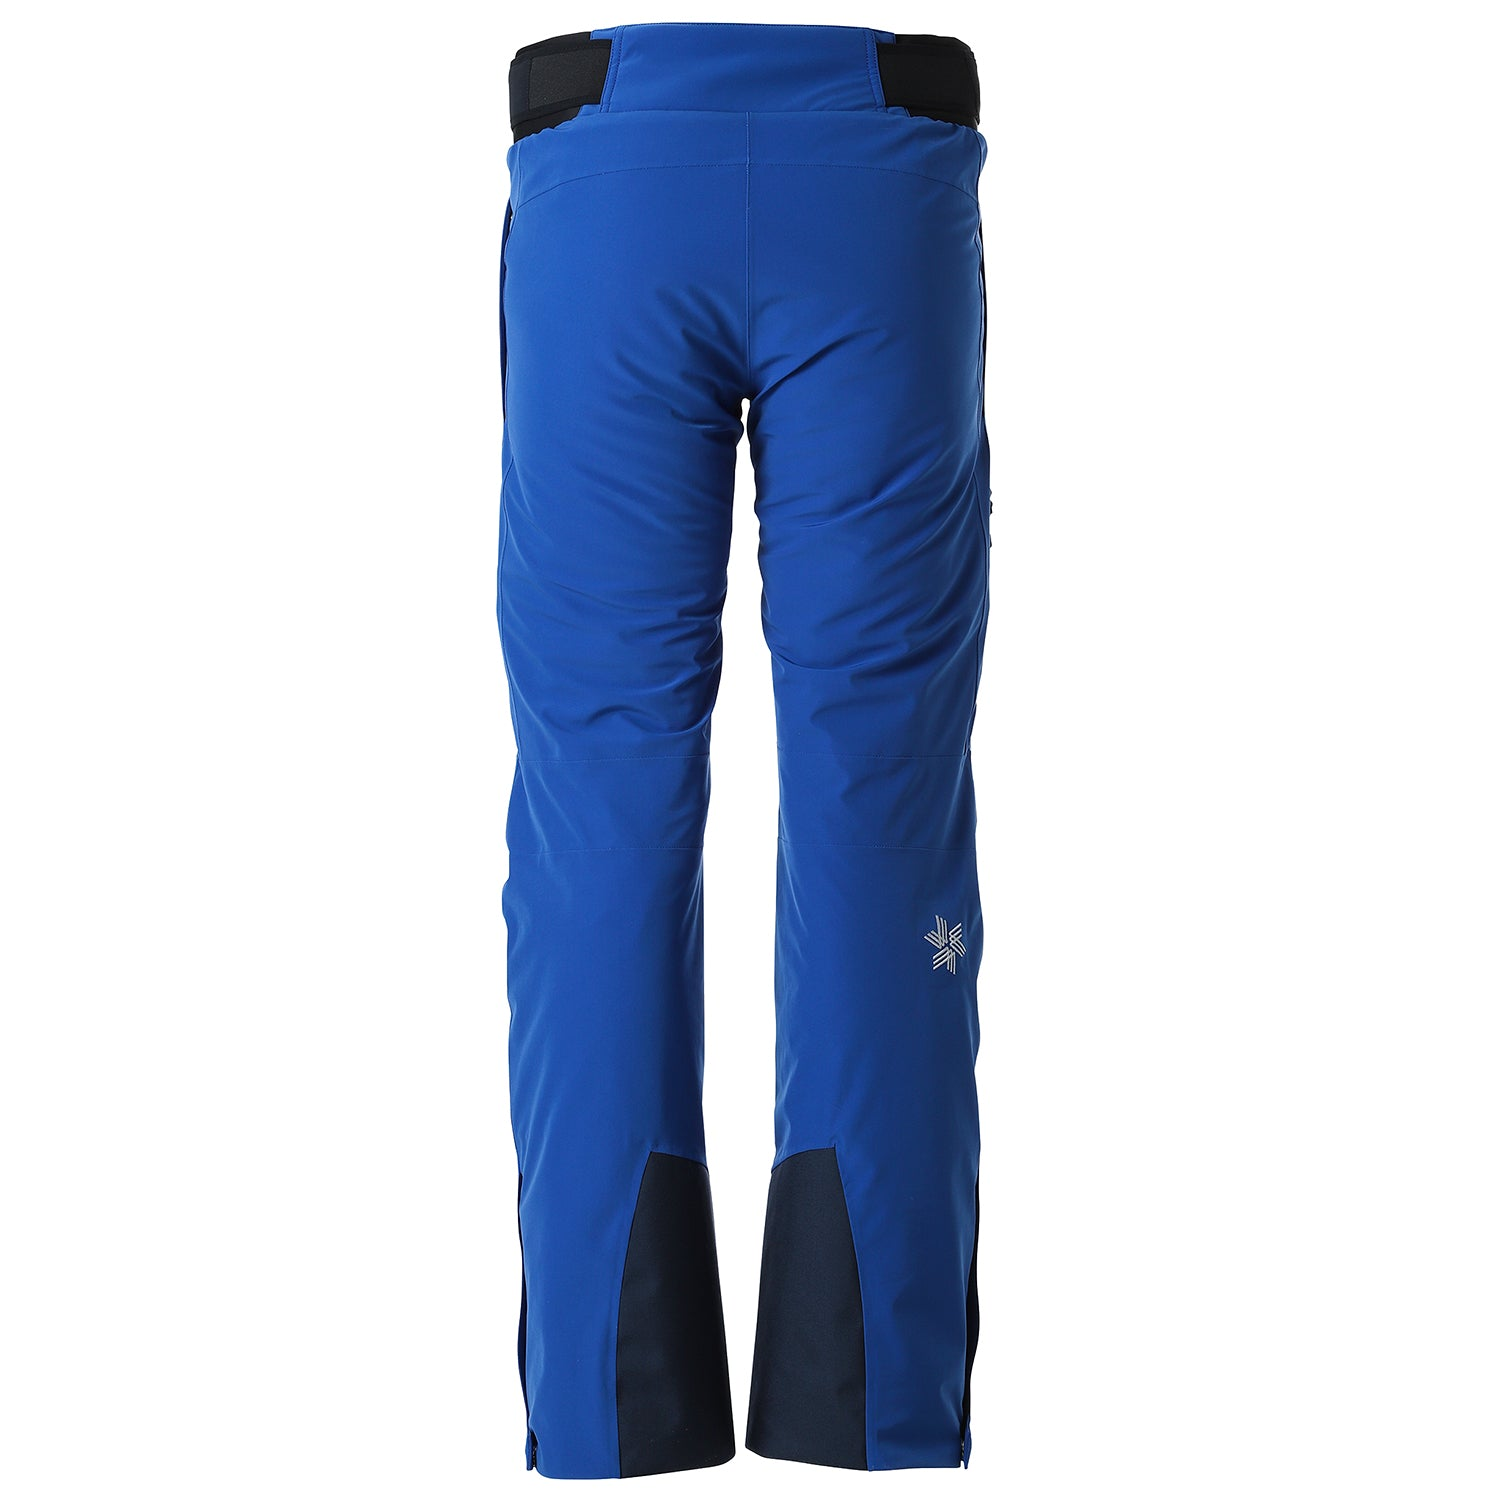 Men's G-Bliss Pants